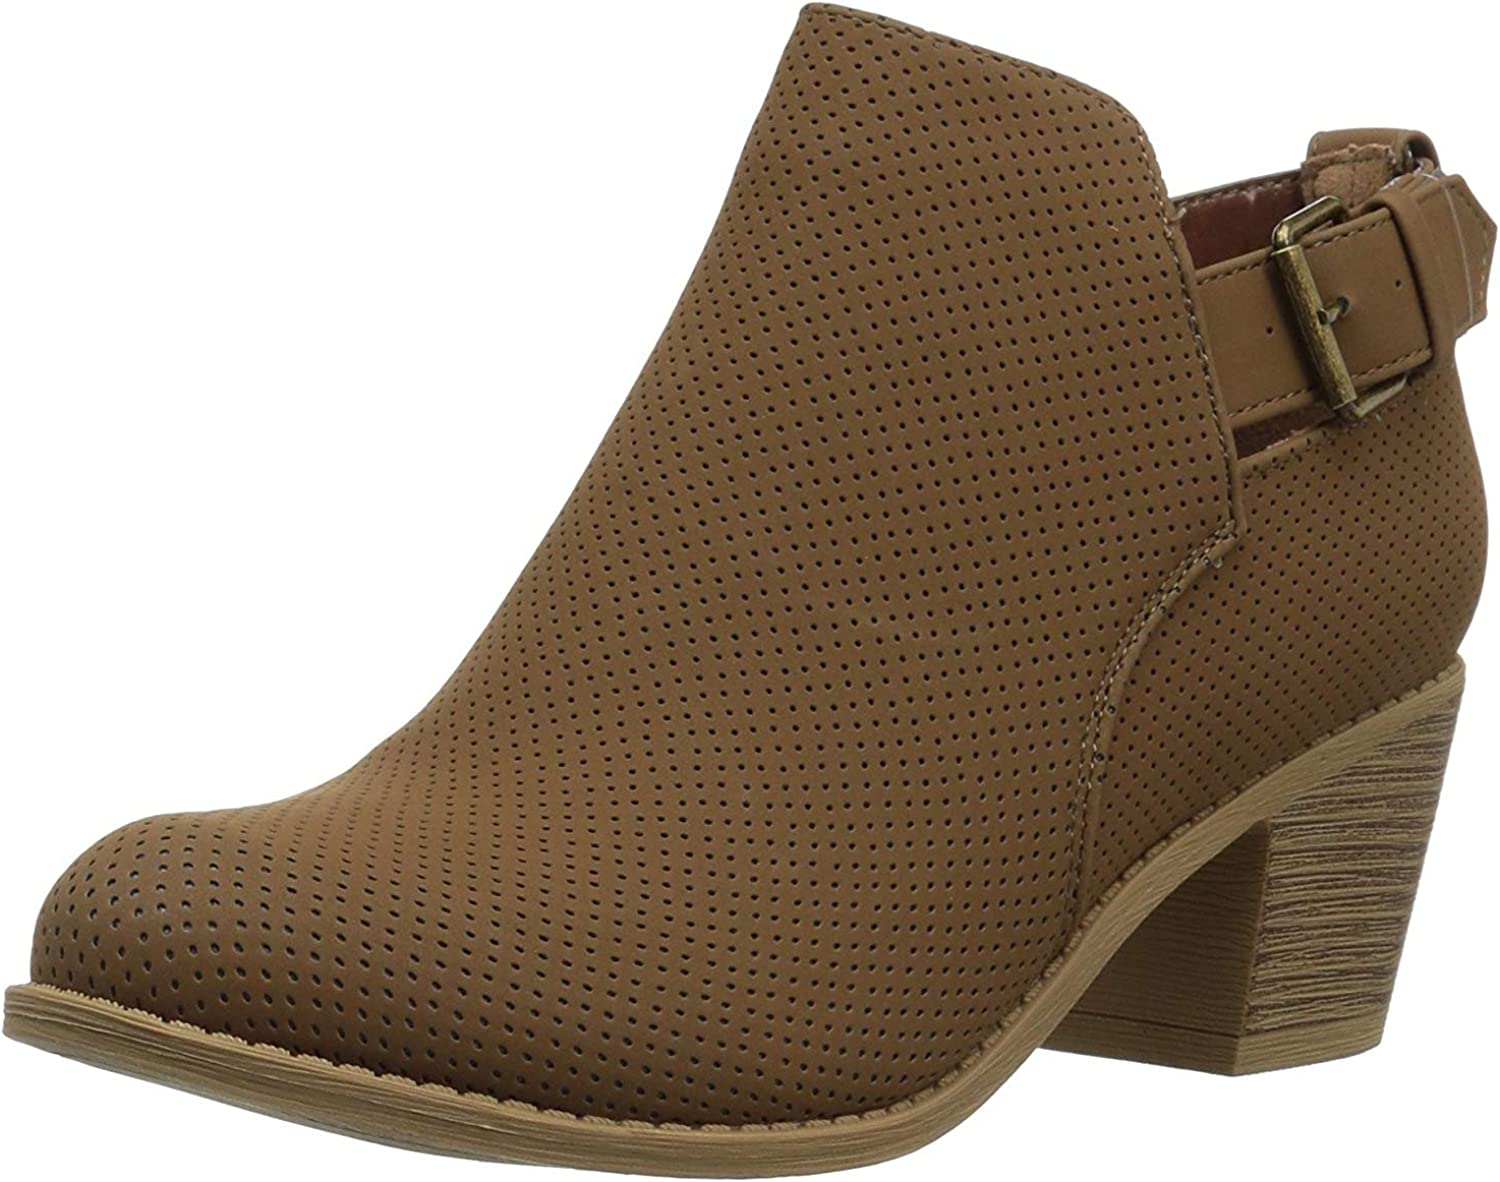 Super beauty product restock quality top! Brinley Co Be super welcome Women's Ankle Analee Boot